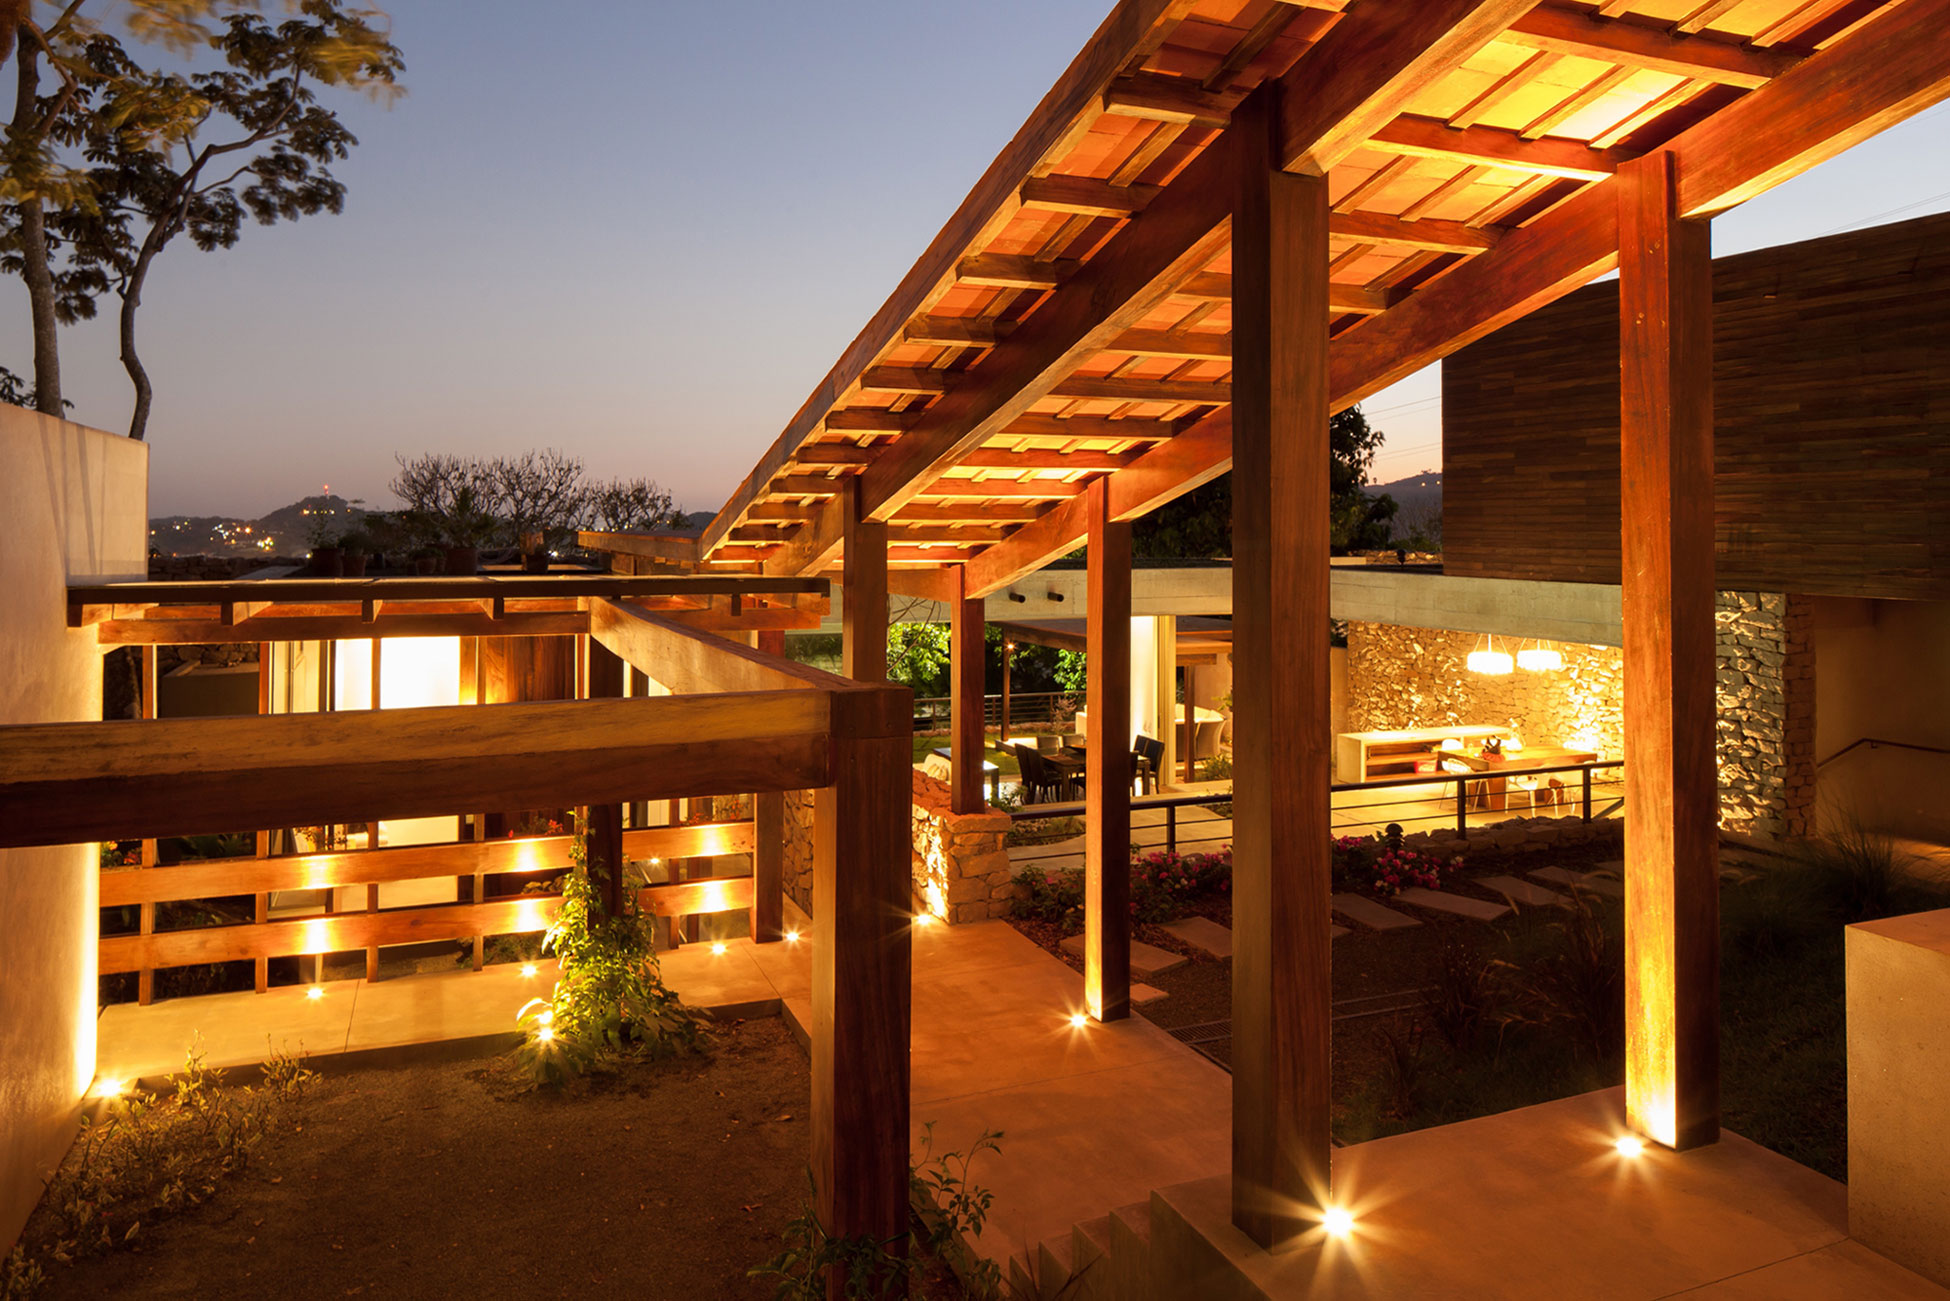 Modern, Rustic Sensation Of Garden House in El Salvador by Cincopatasalgato-17